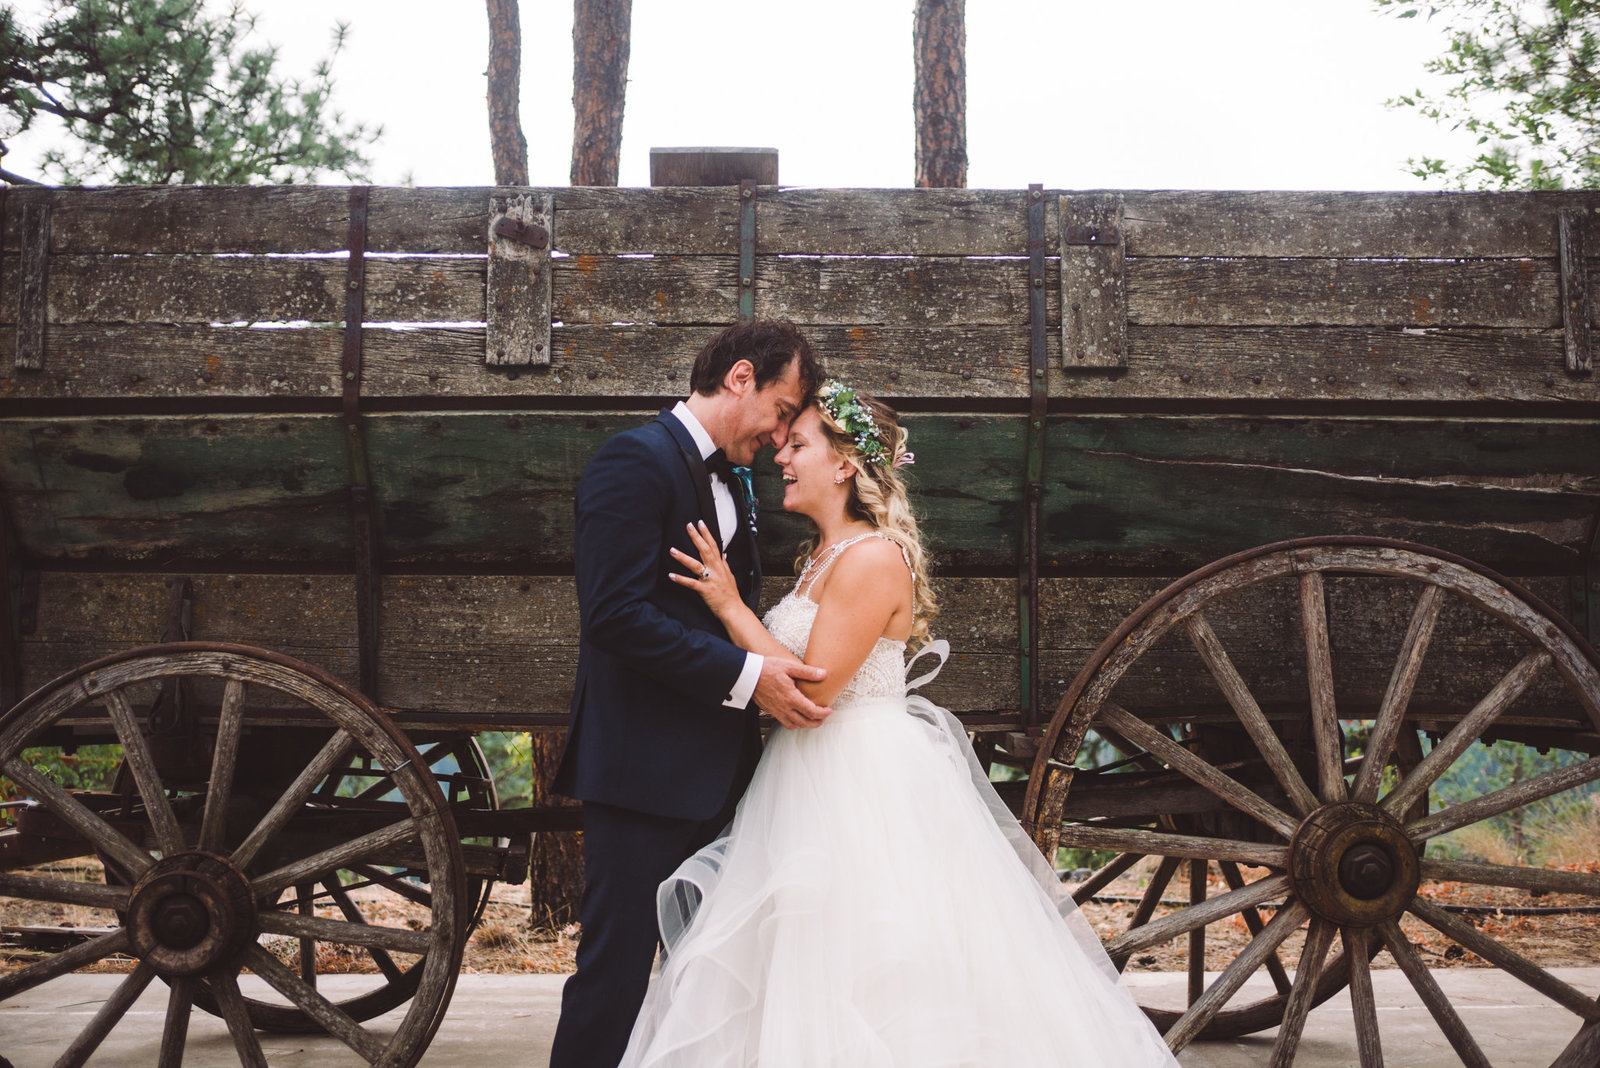 Beautiful wedding at Powers Creek Retreat during wildfire season